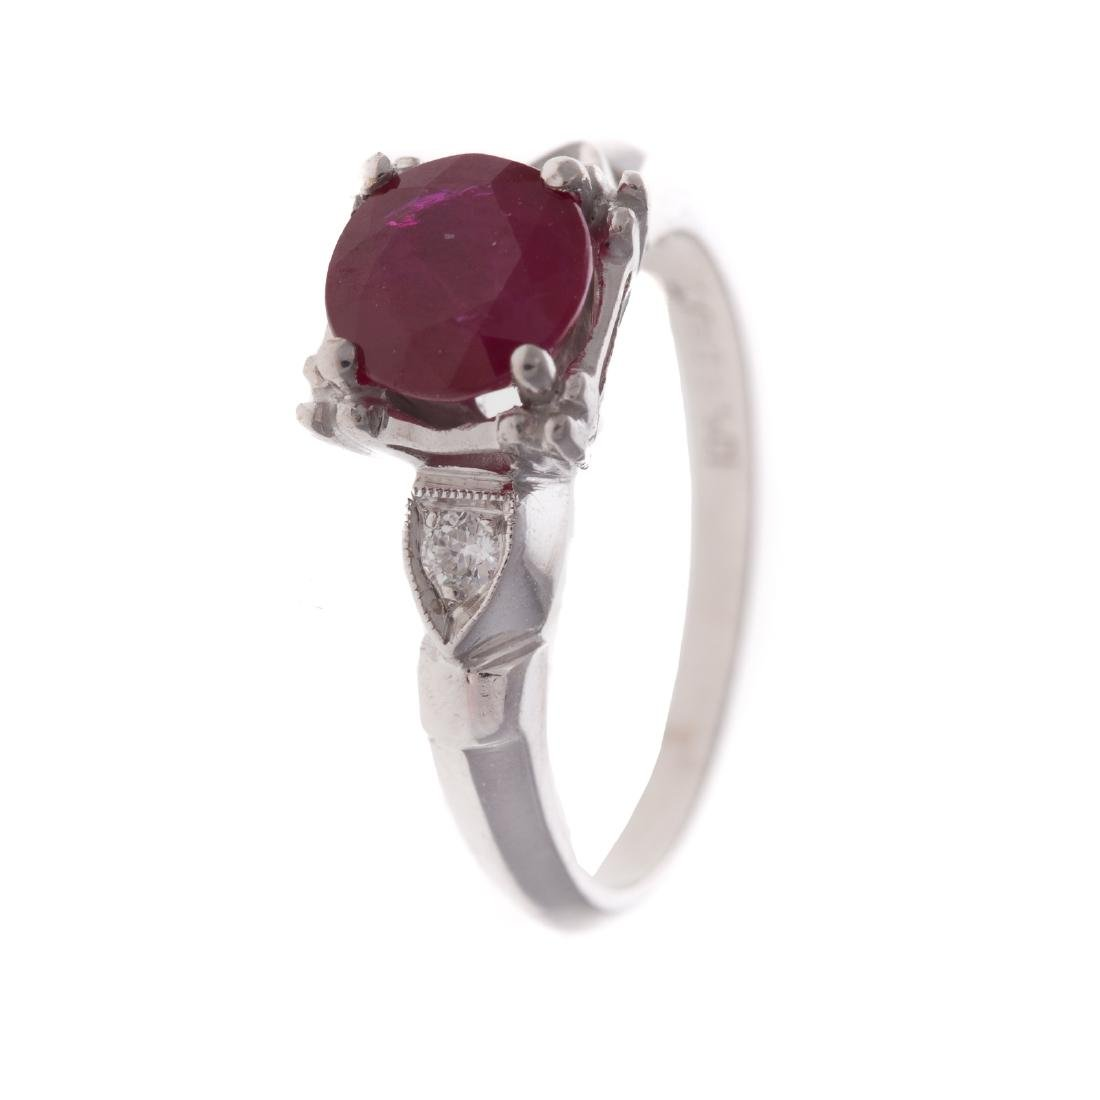 A Lady's Ruby & Diamond Ring with Plat Band - 2